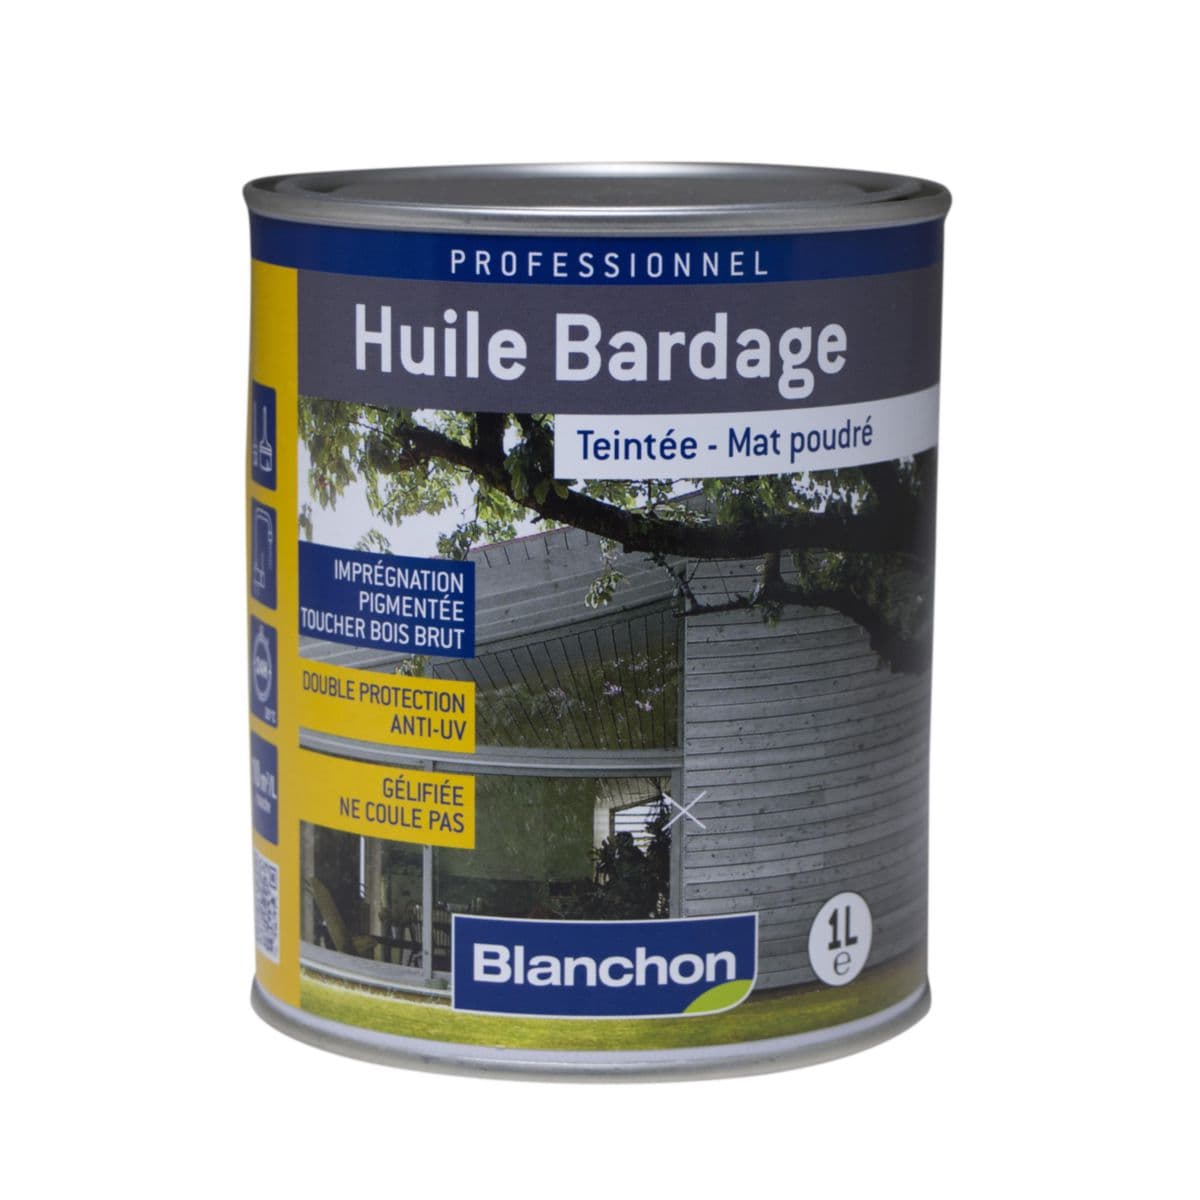 HUILE BARDAGE OPAQUE 1 Litre